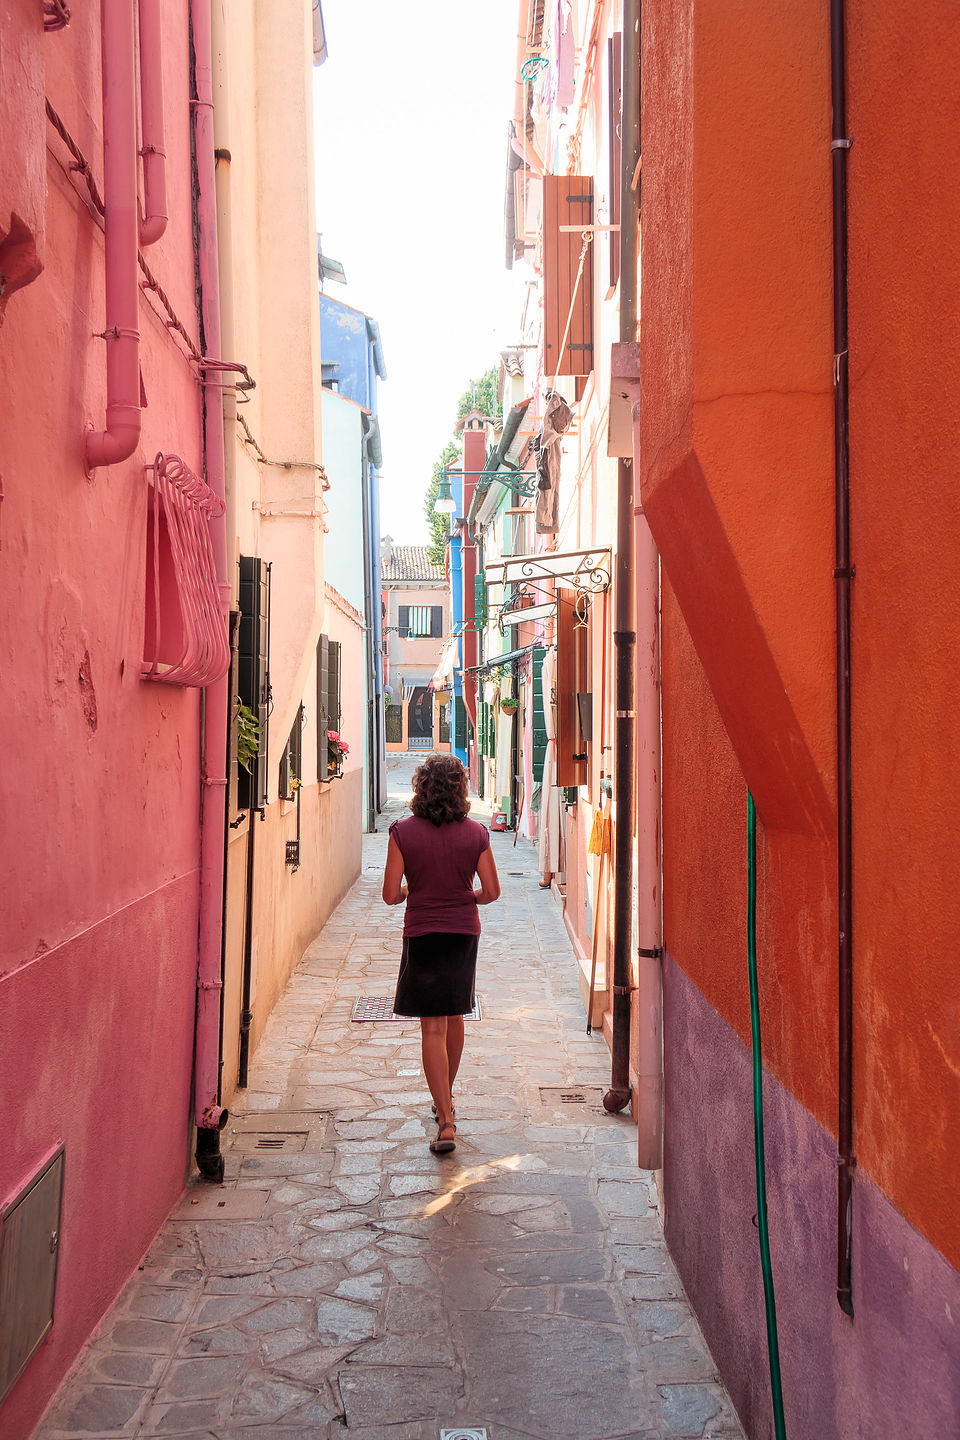 Strolling the alleys of Burano